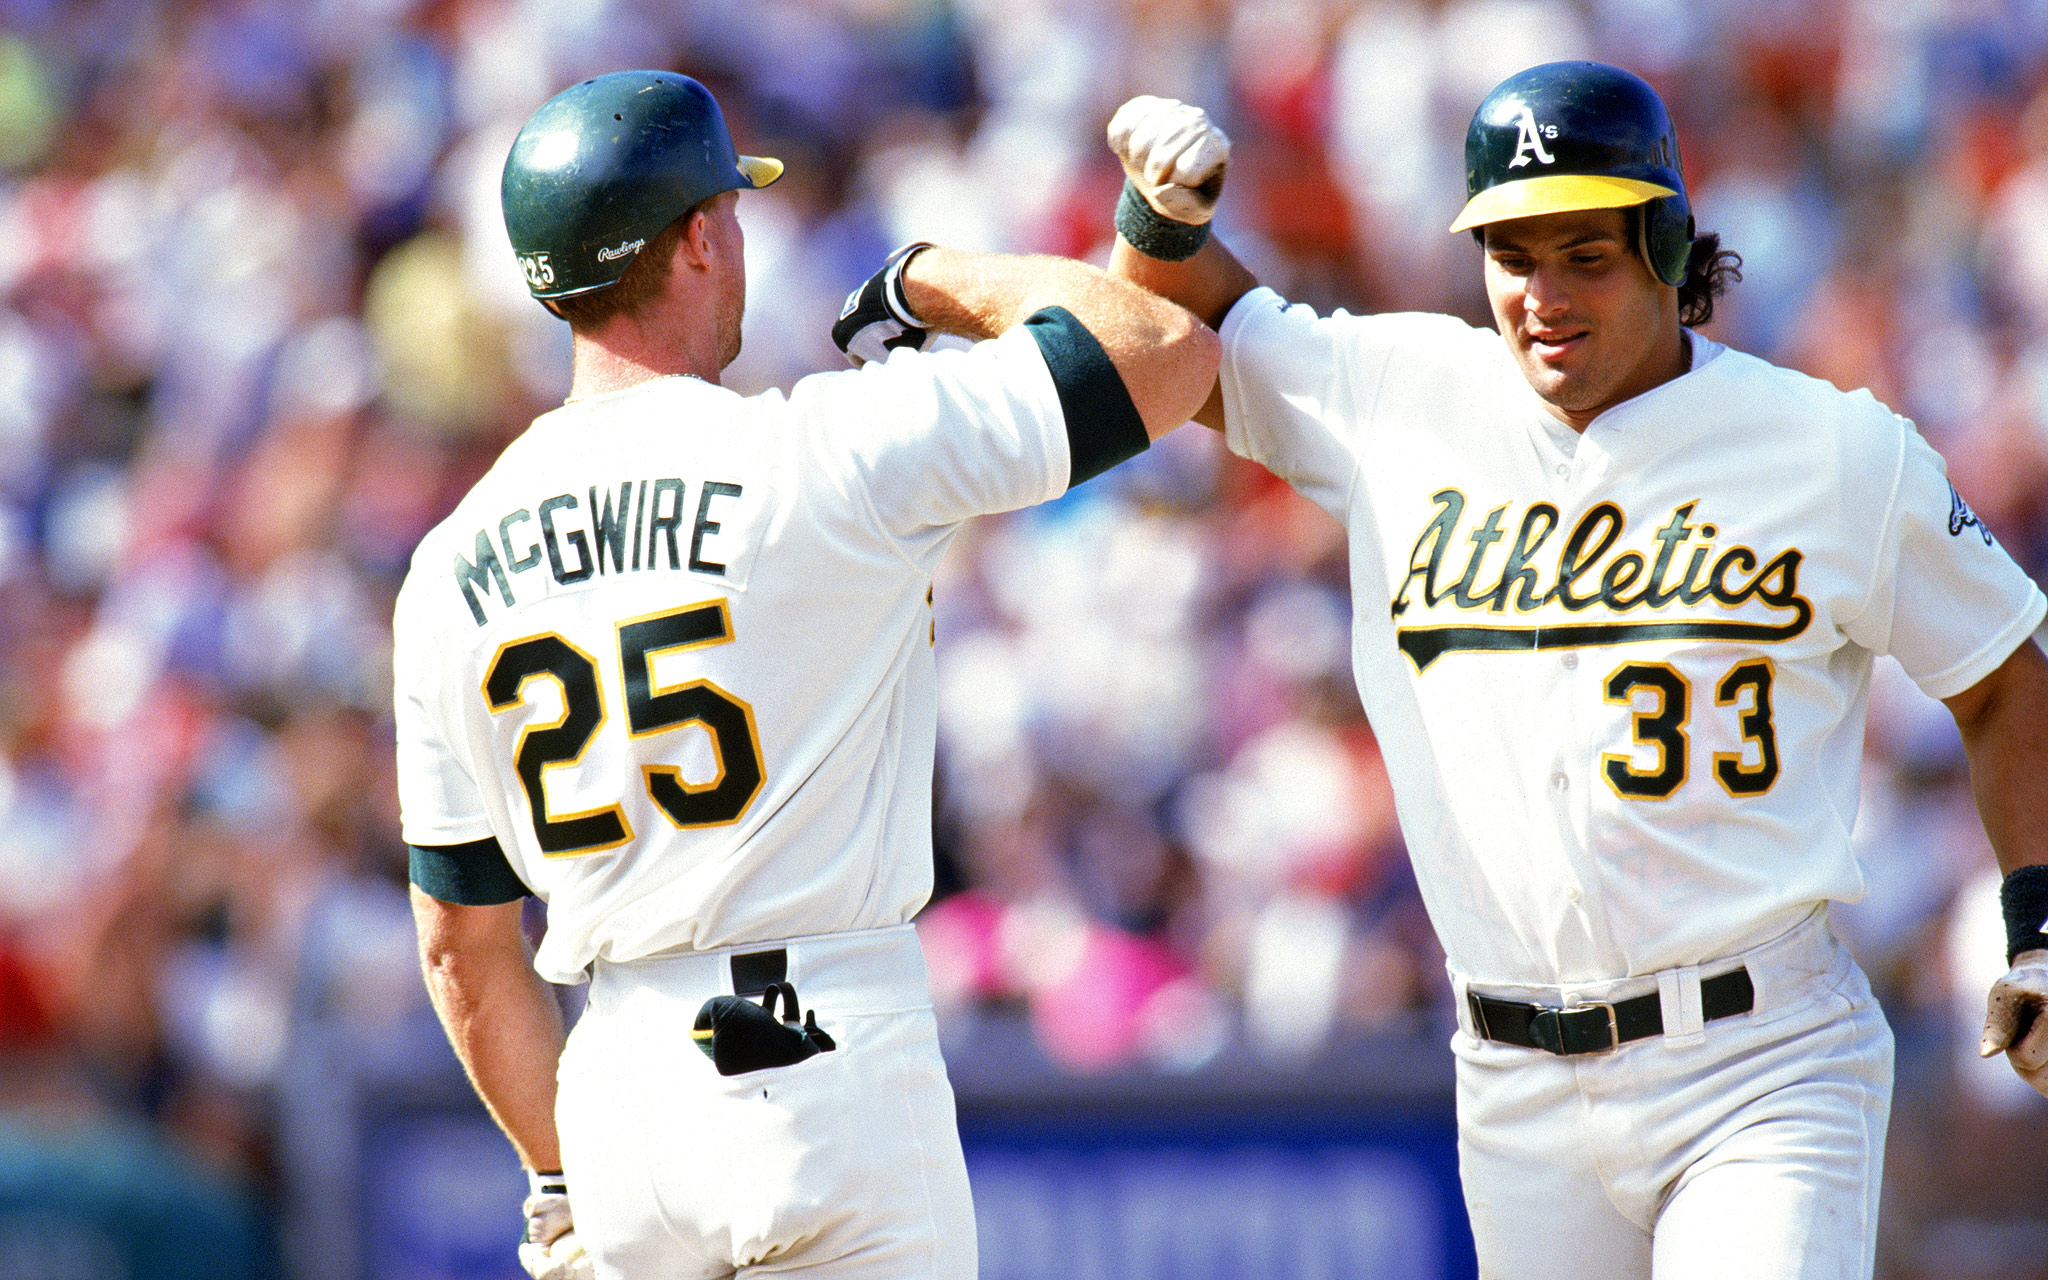 mcgwire before and after steroids